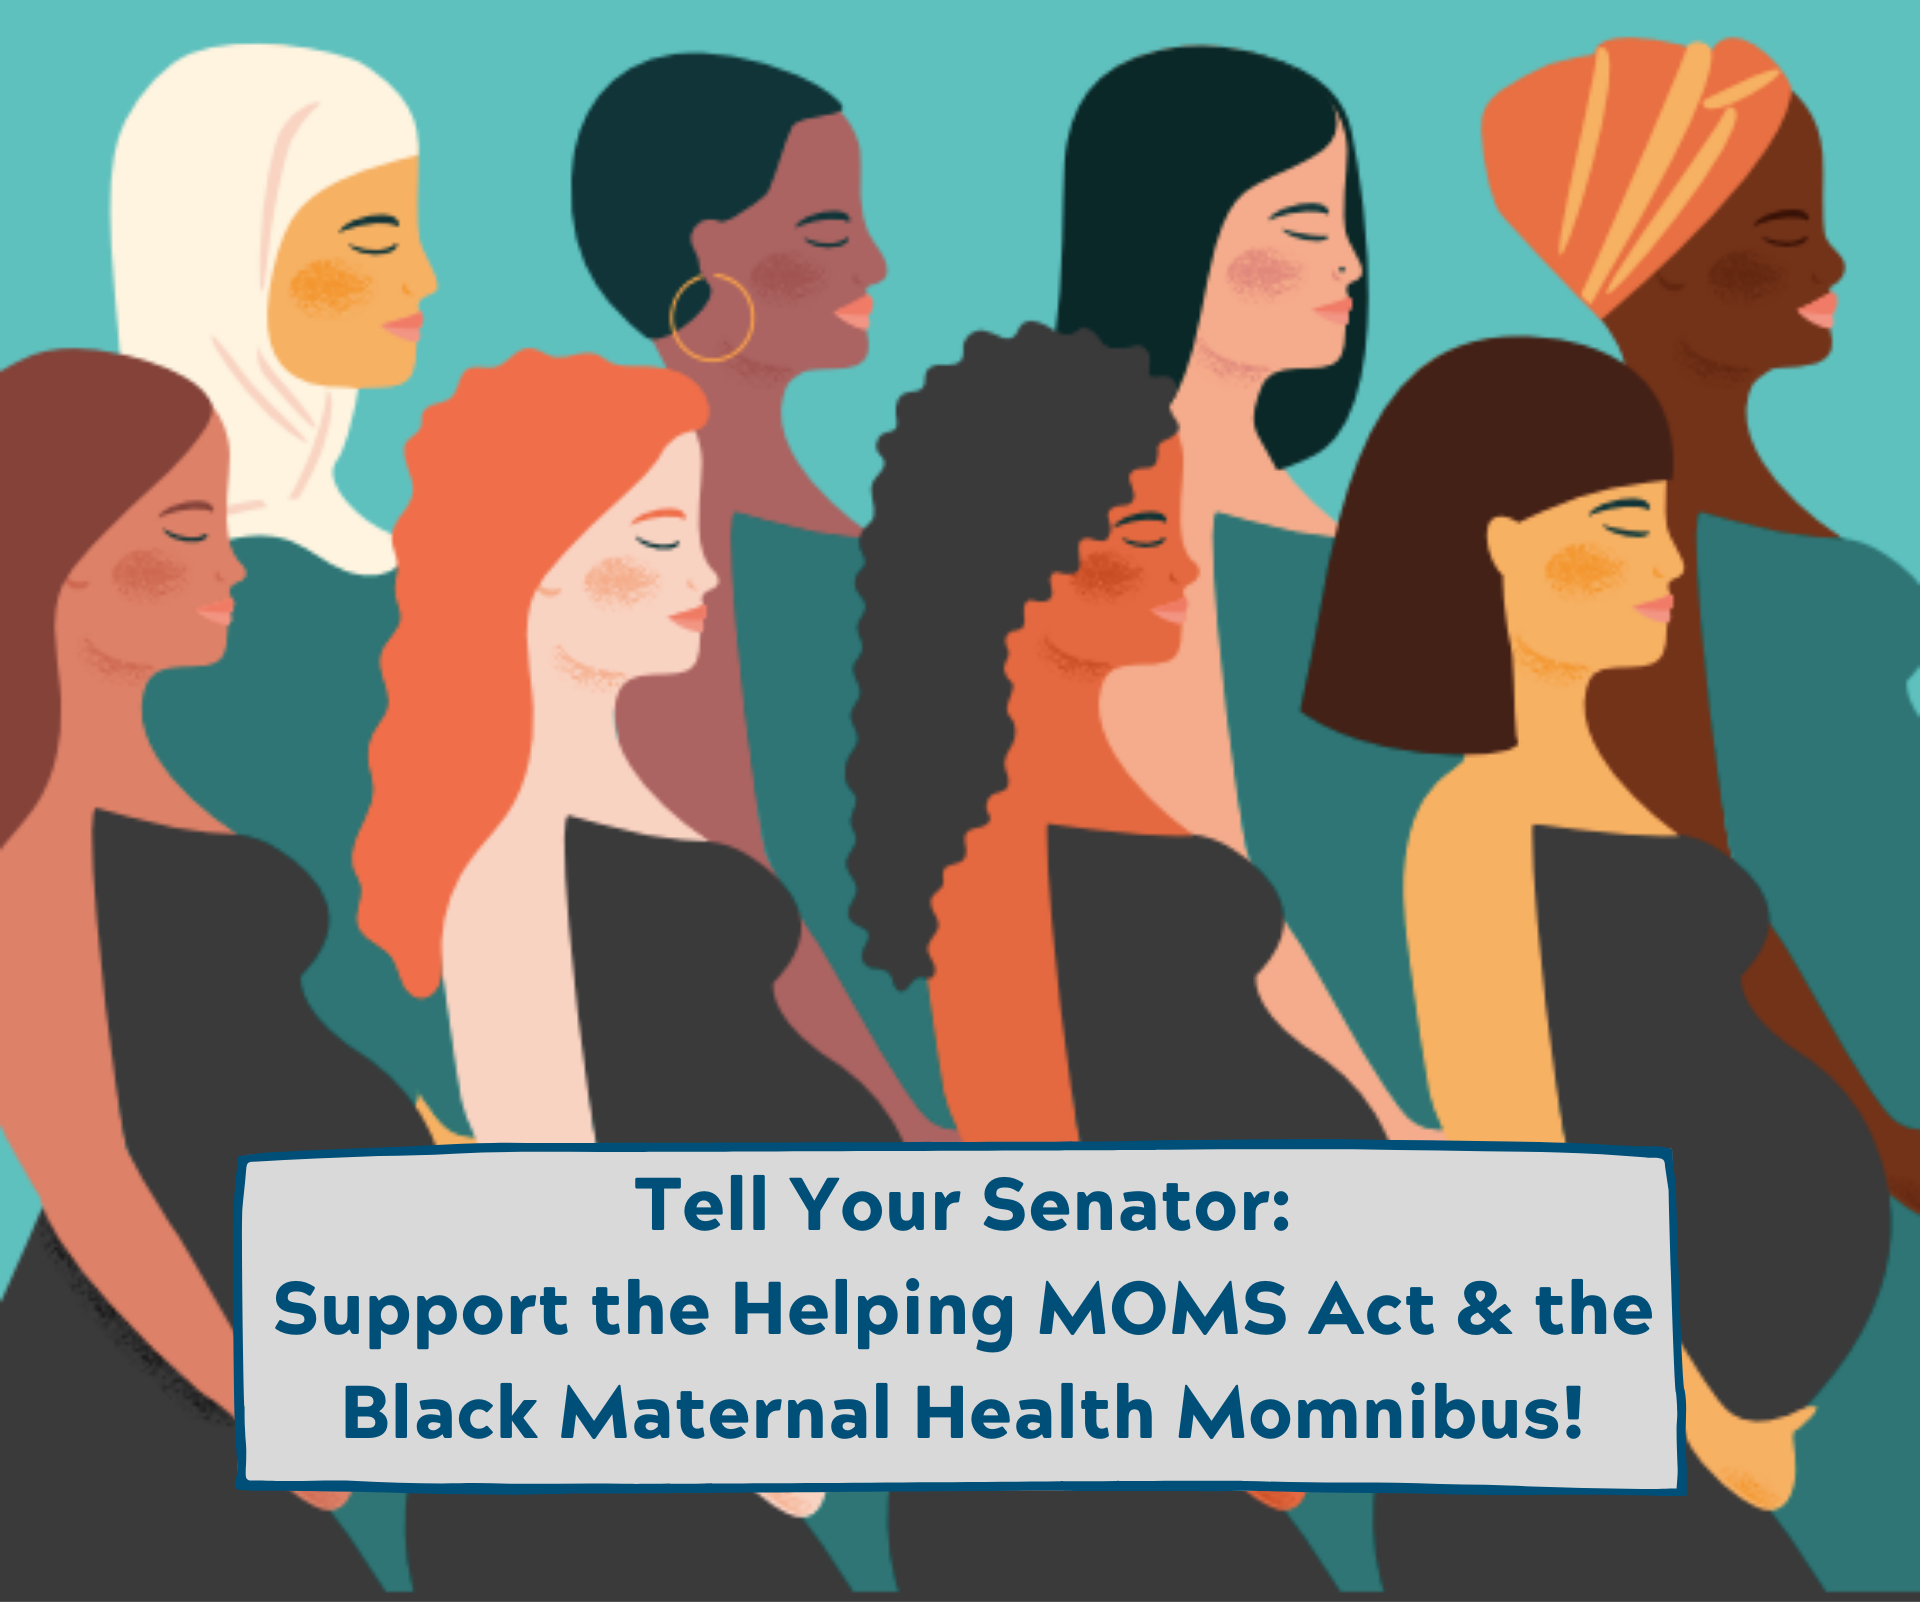 Support the Helping Medicaid Offer Maternity Services Act of 2019 (H.R. 4996) and the Black Maternal Health Momnibus!